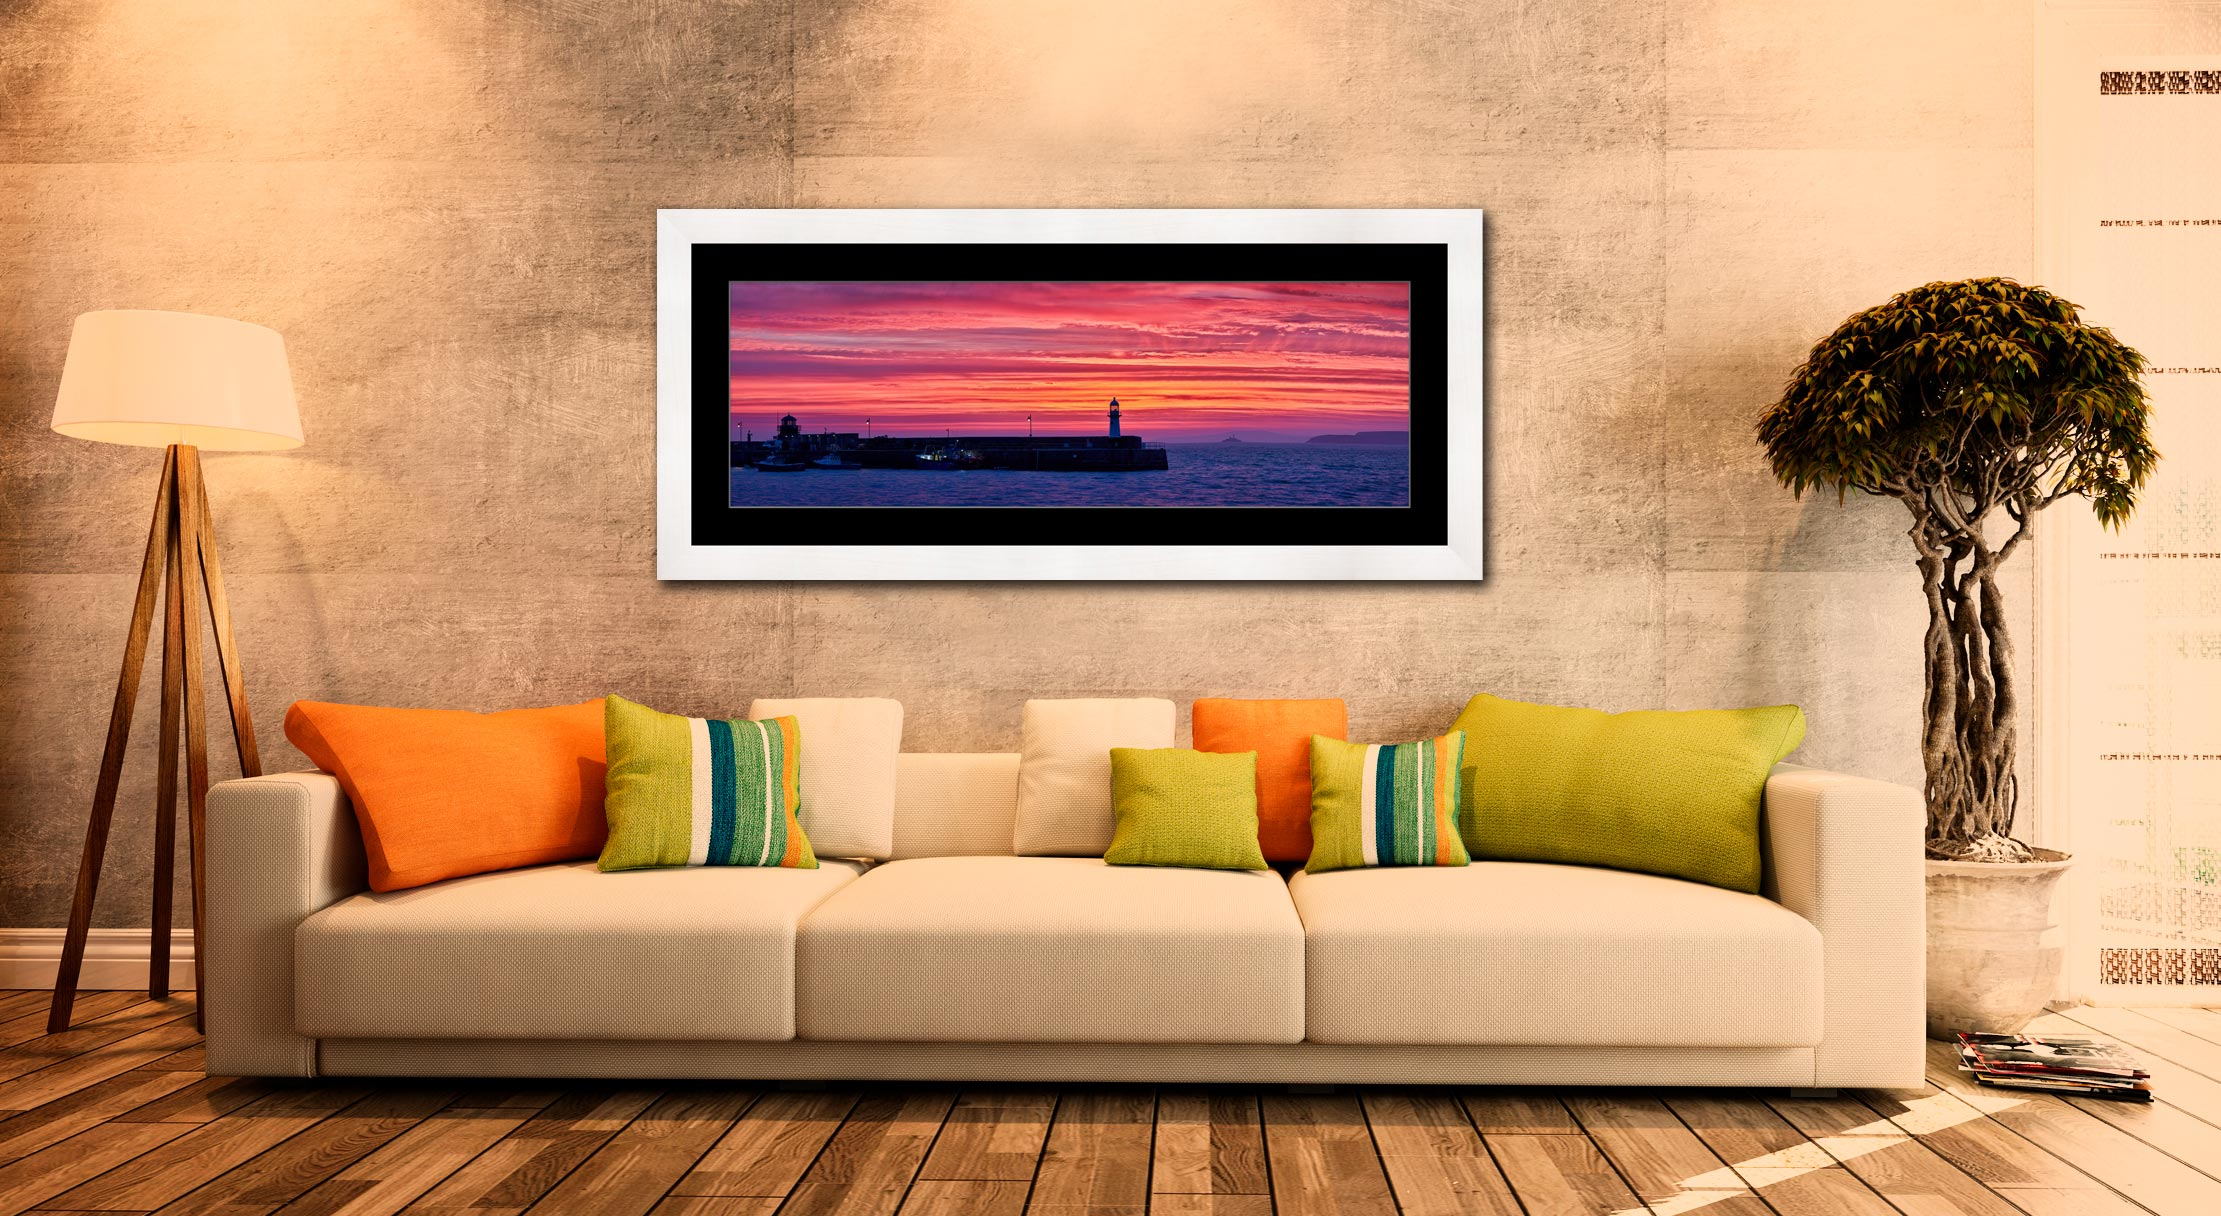 Approaching Dawn Over St Ives - Framed Print with Mount on Wall